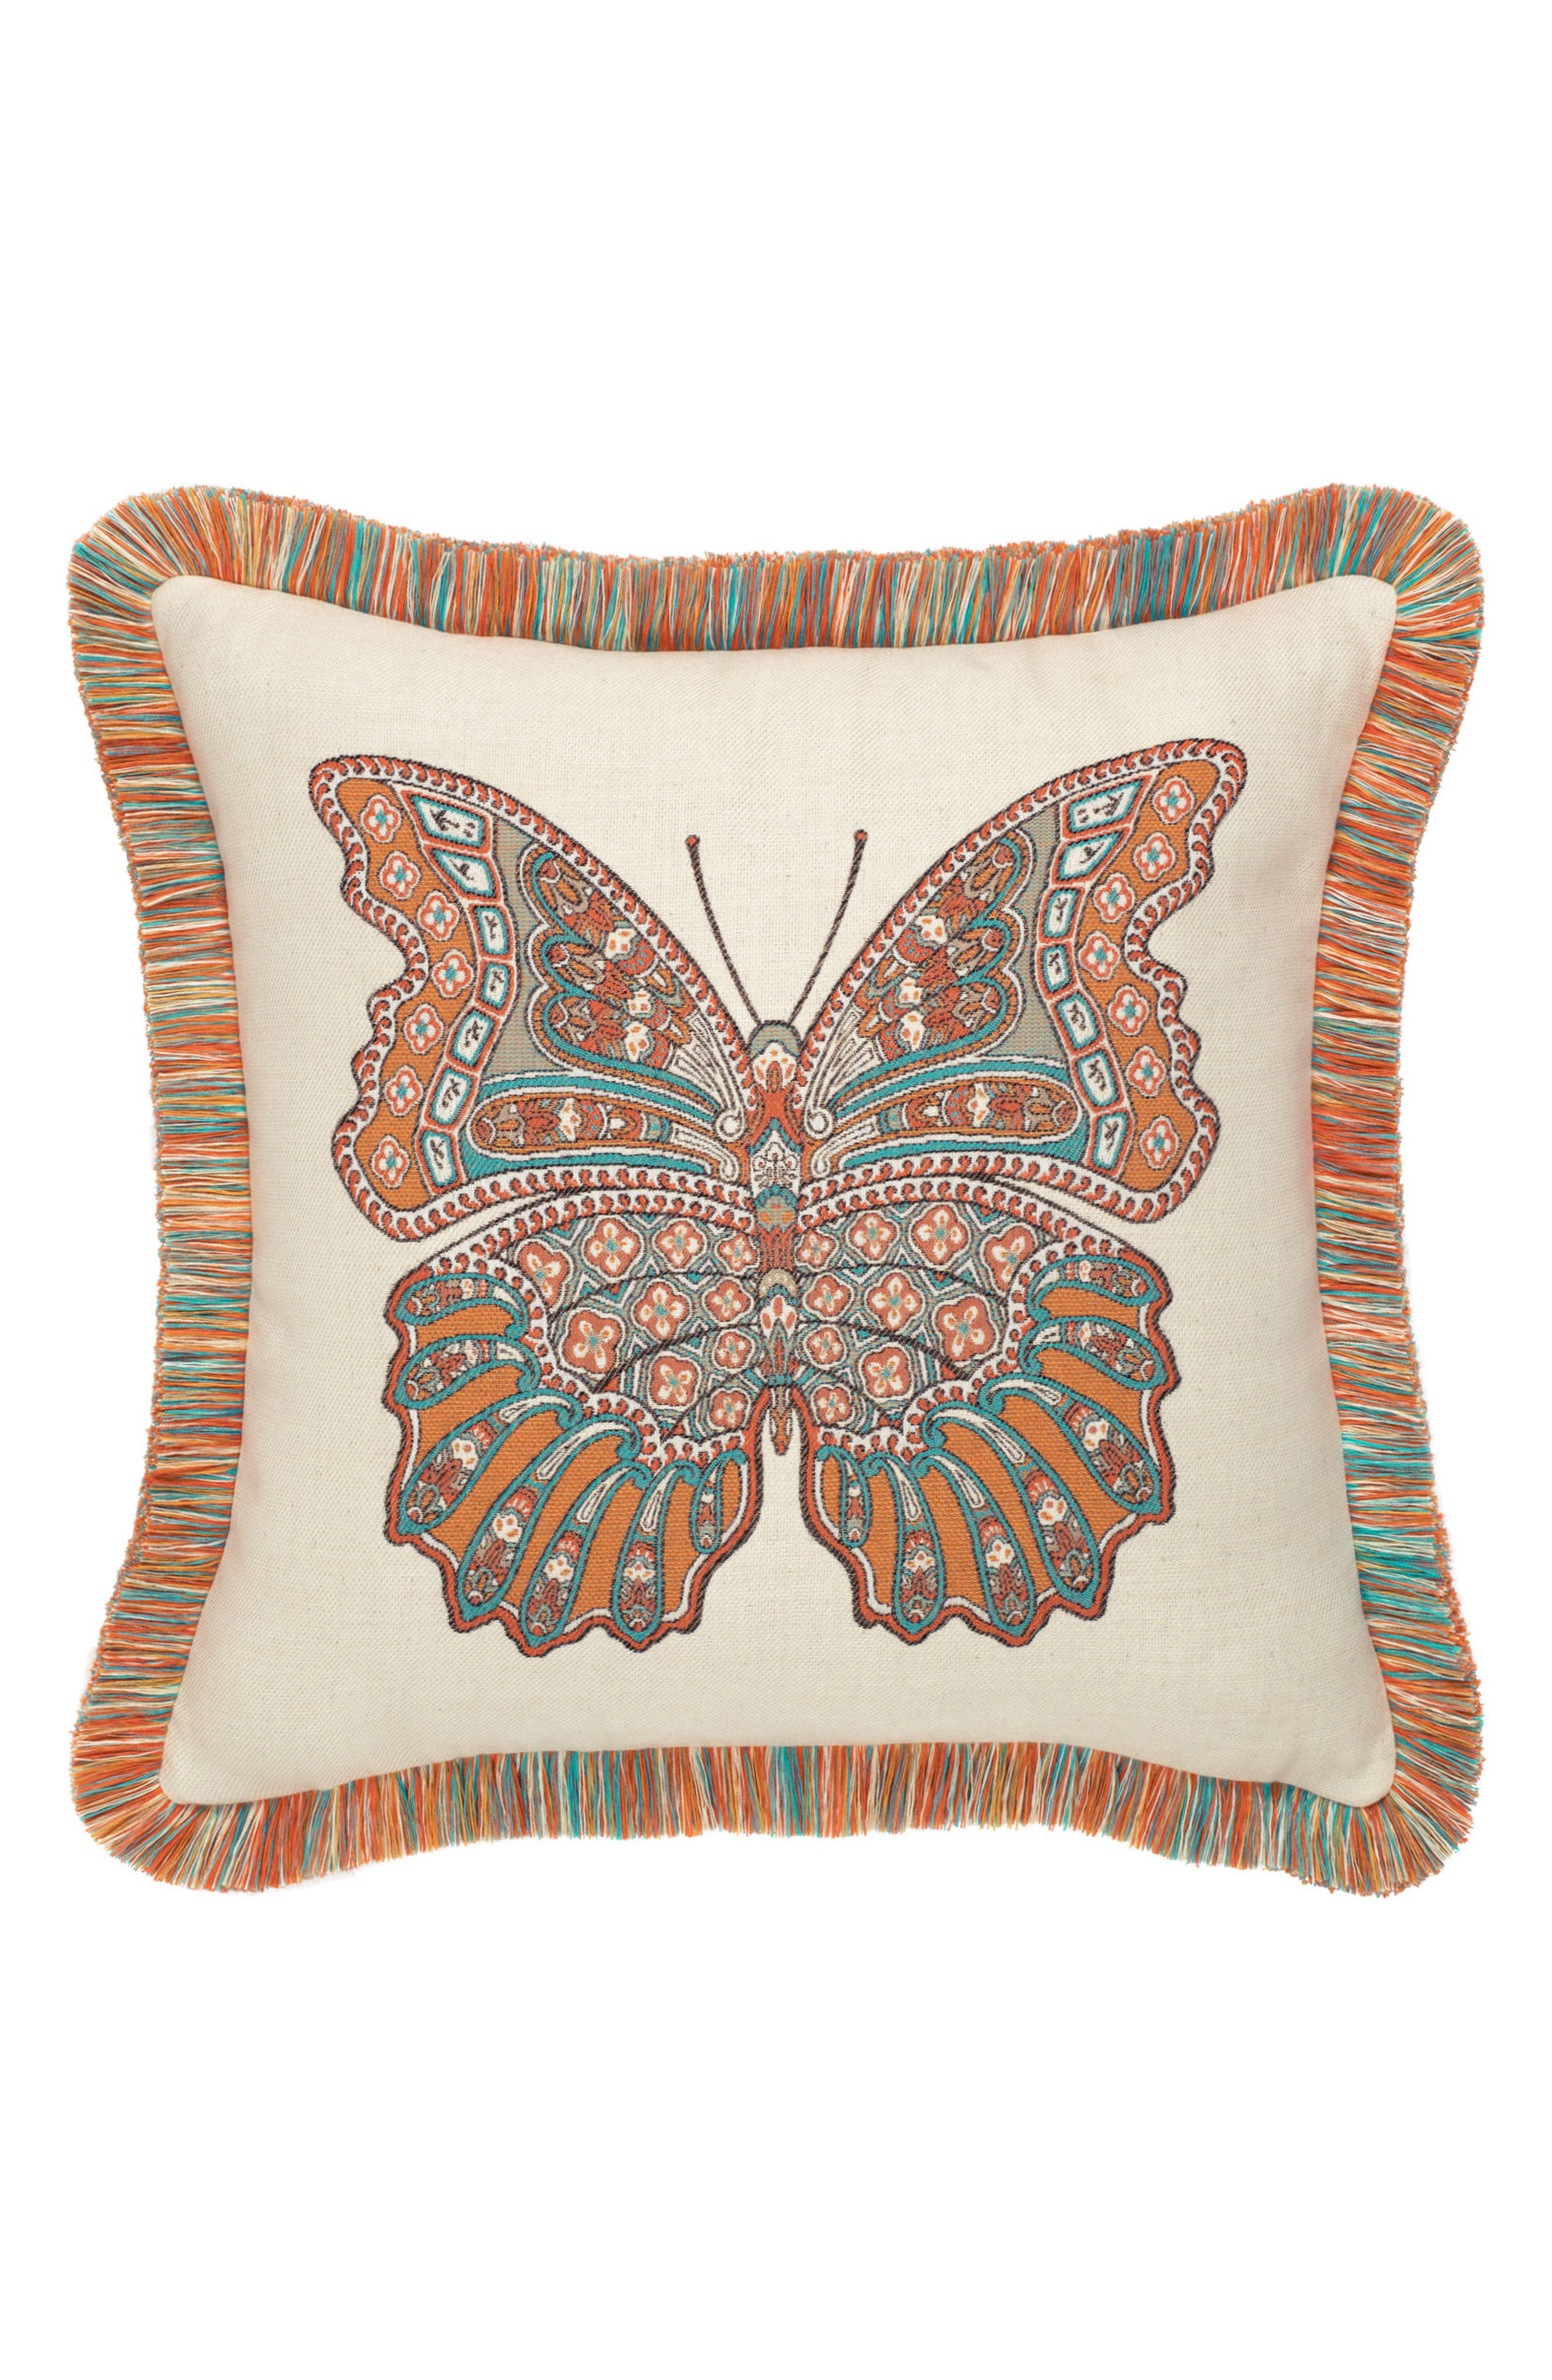 Mariposa Lagoon Indoor/Outdoor Accent Pillow,                         Main,                         color, ORANGE/ IVORY